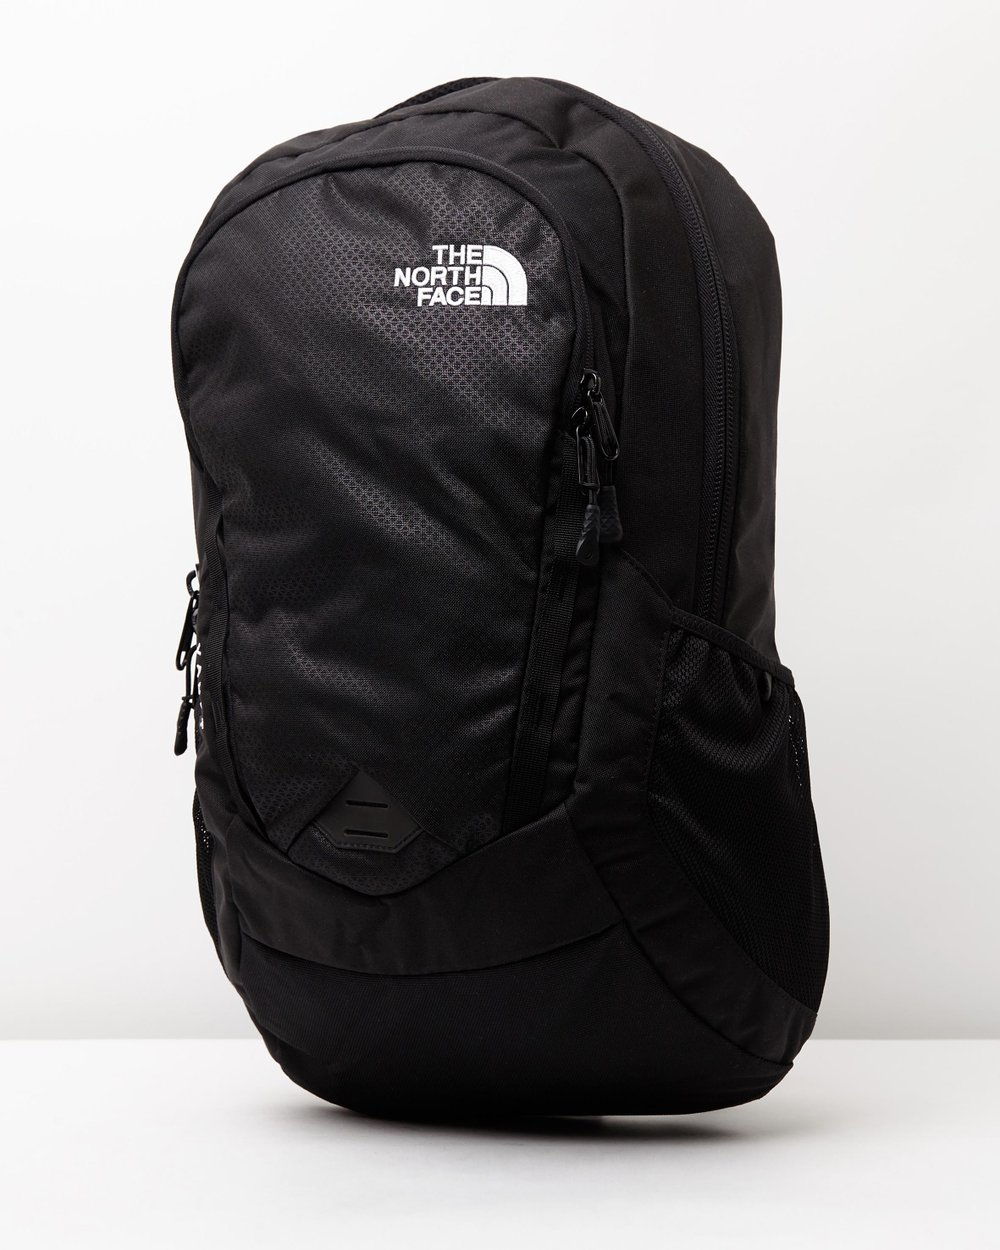 a3d667d841ee58 Vault by The North Face Online   THE ICONIC   Australia